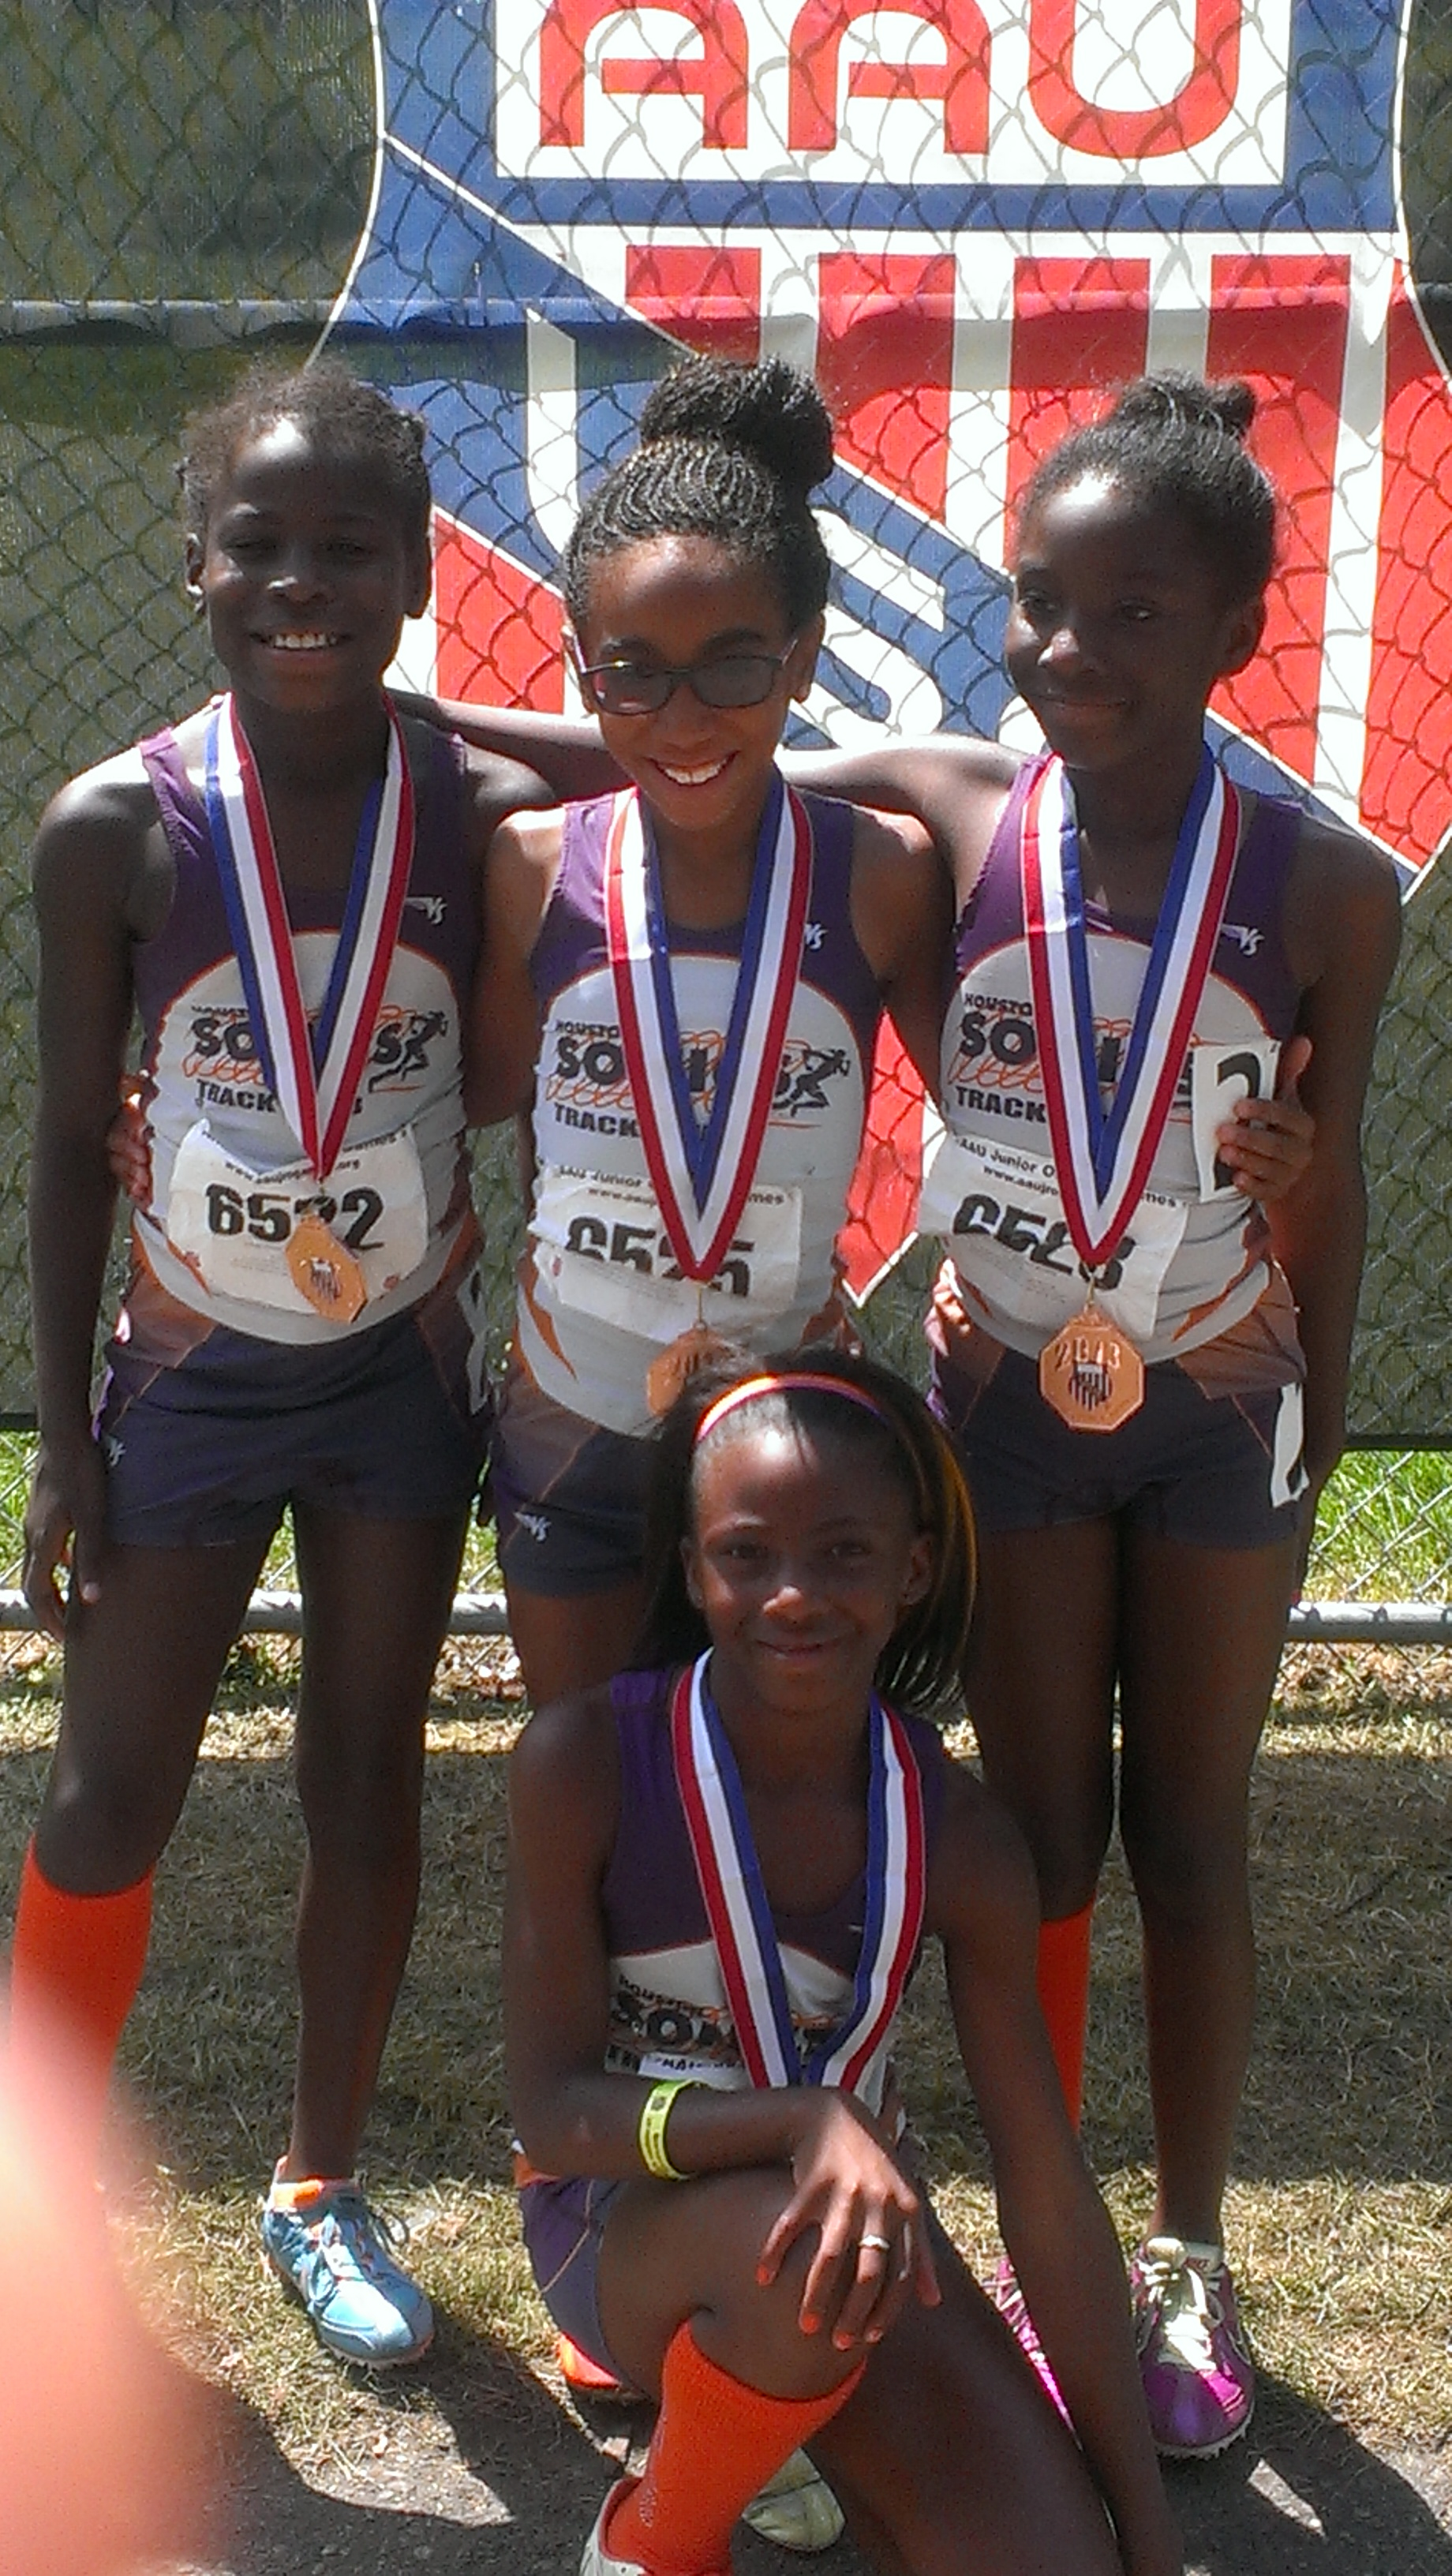 9-10 Girls 4x400 relay medalists